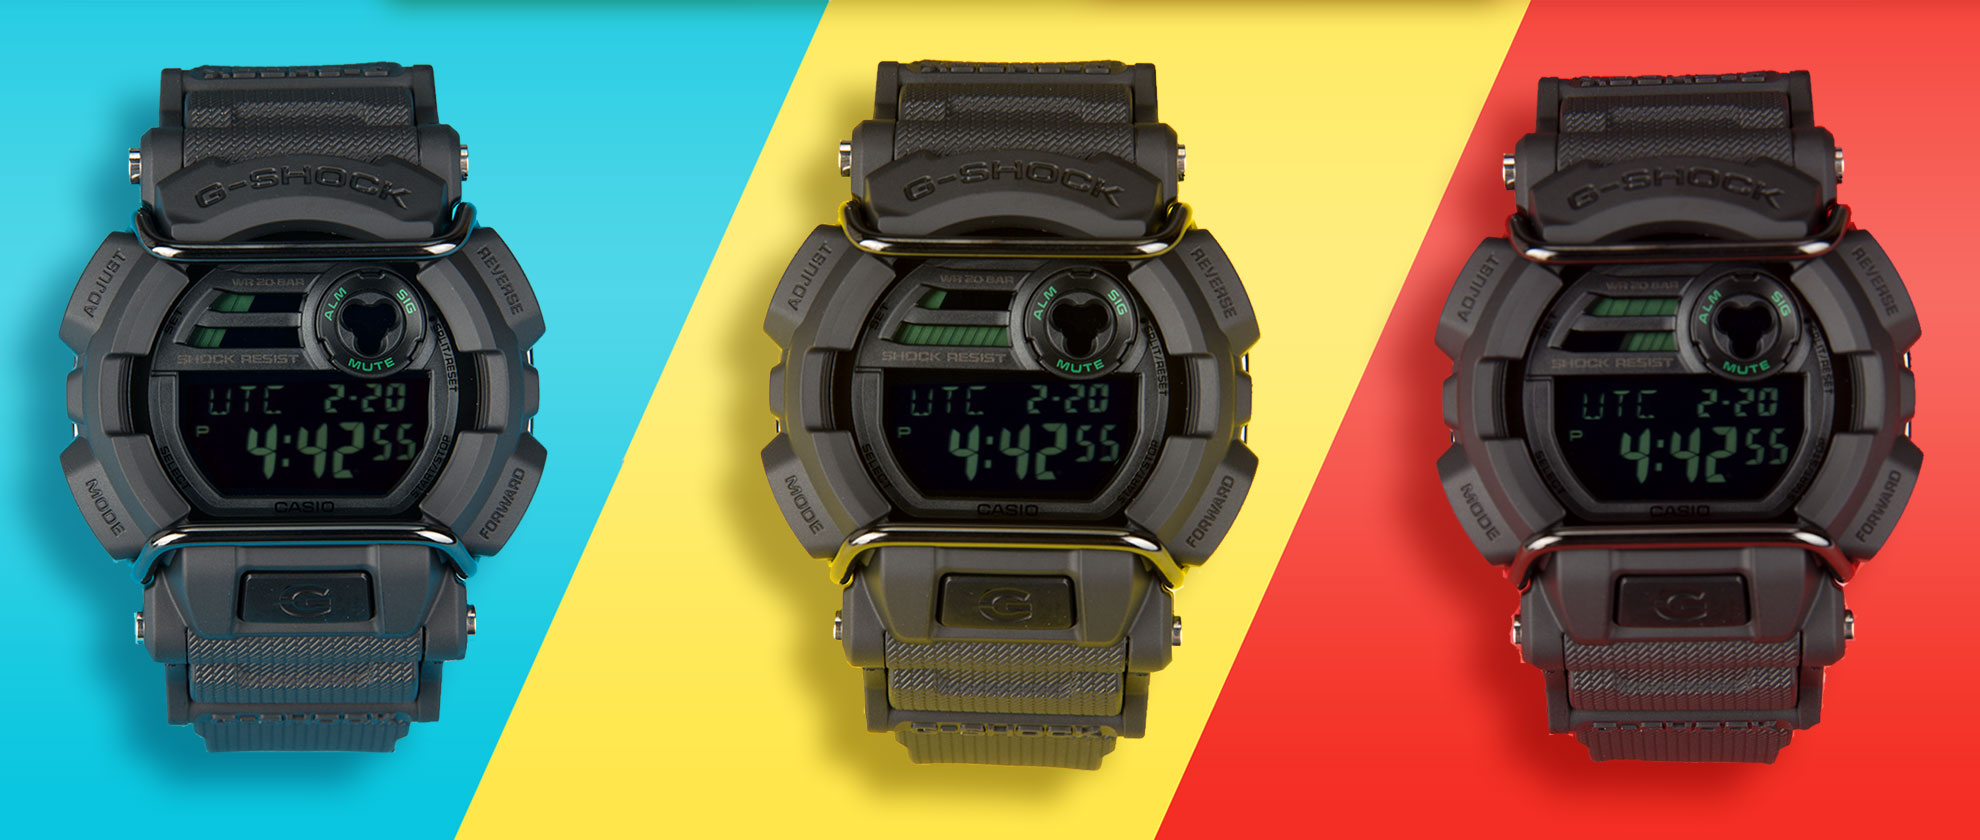 WIN A G-SHOCK BLACK GD-400MB-1ER WATCH WORTH £100!